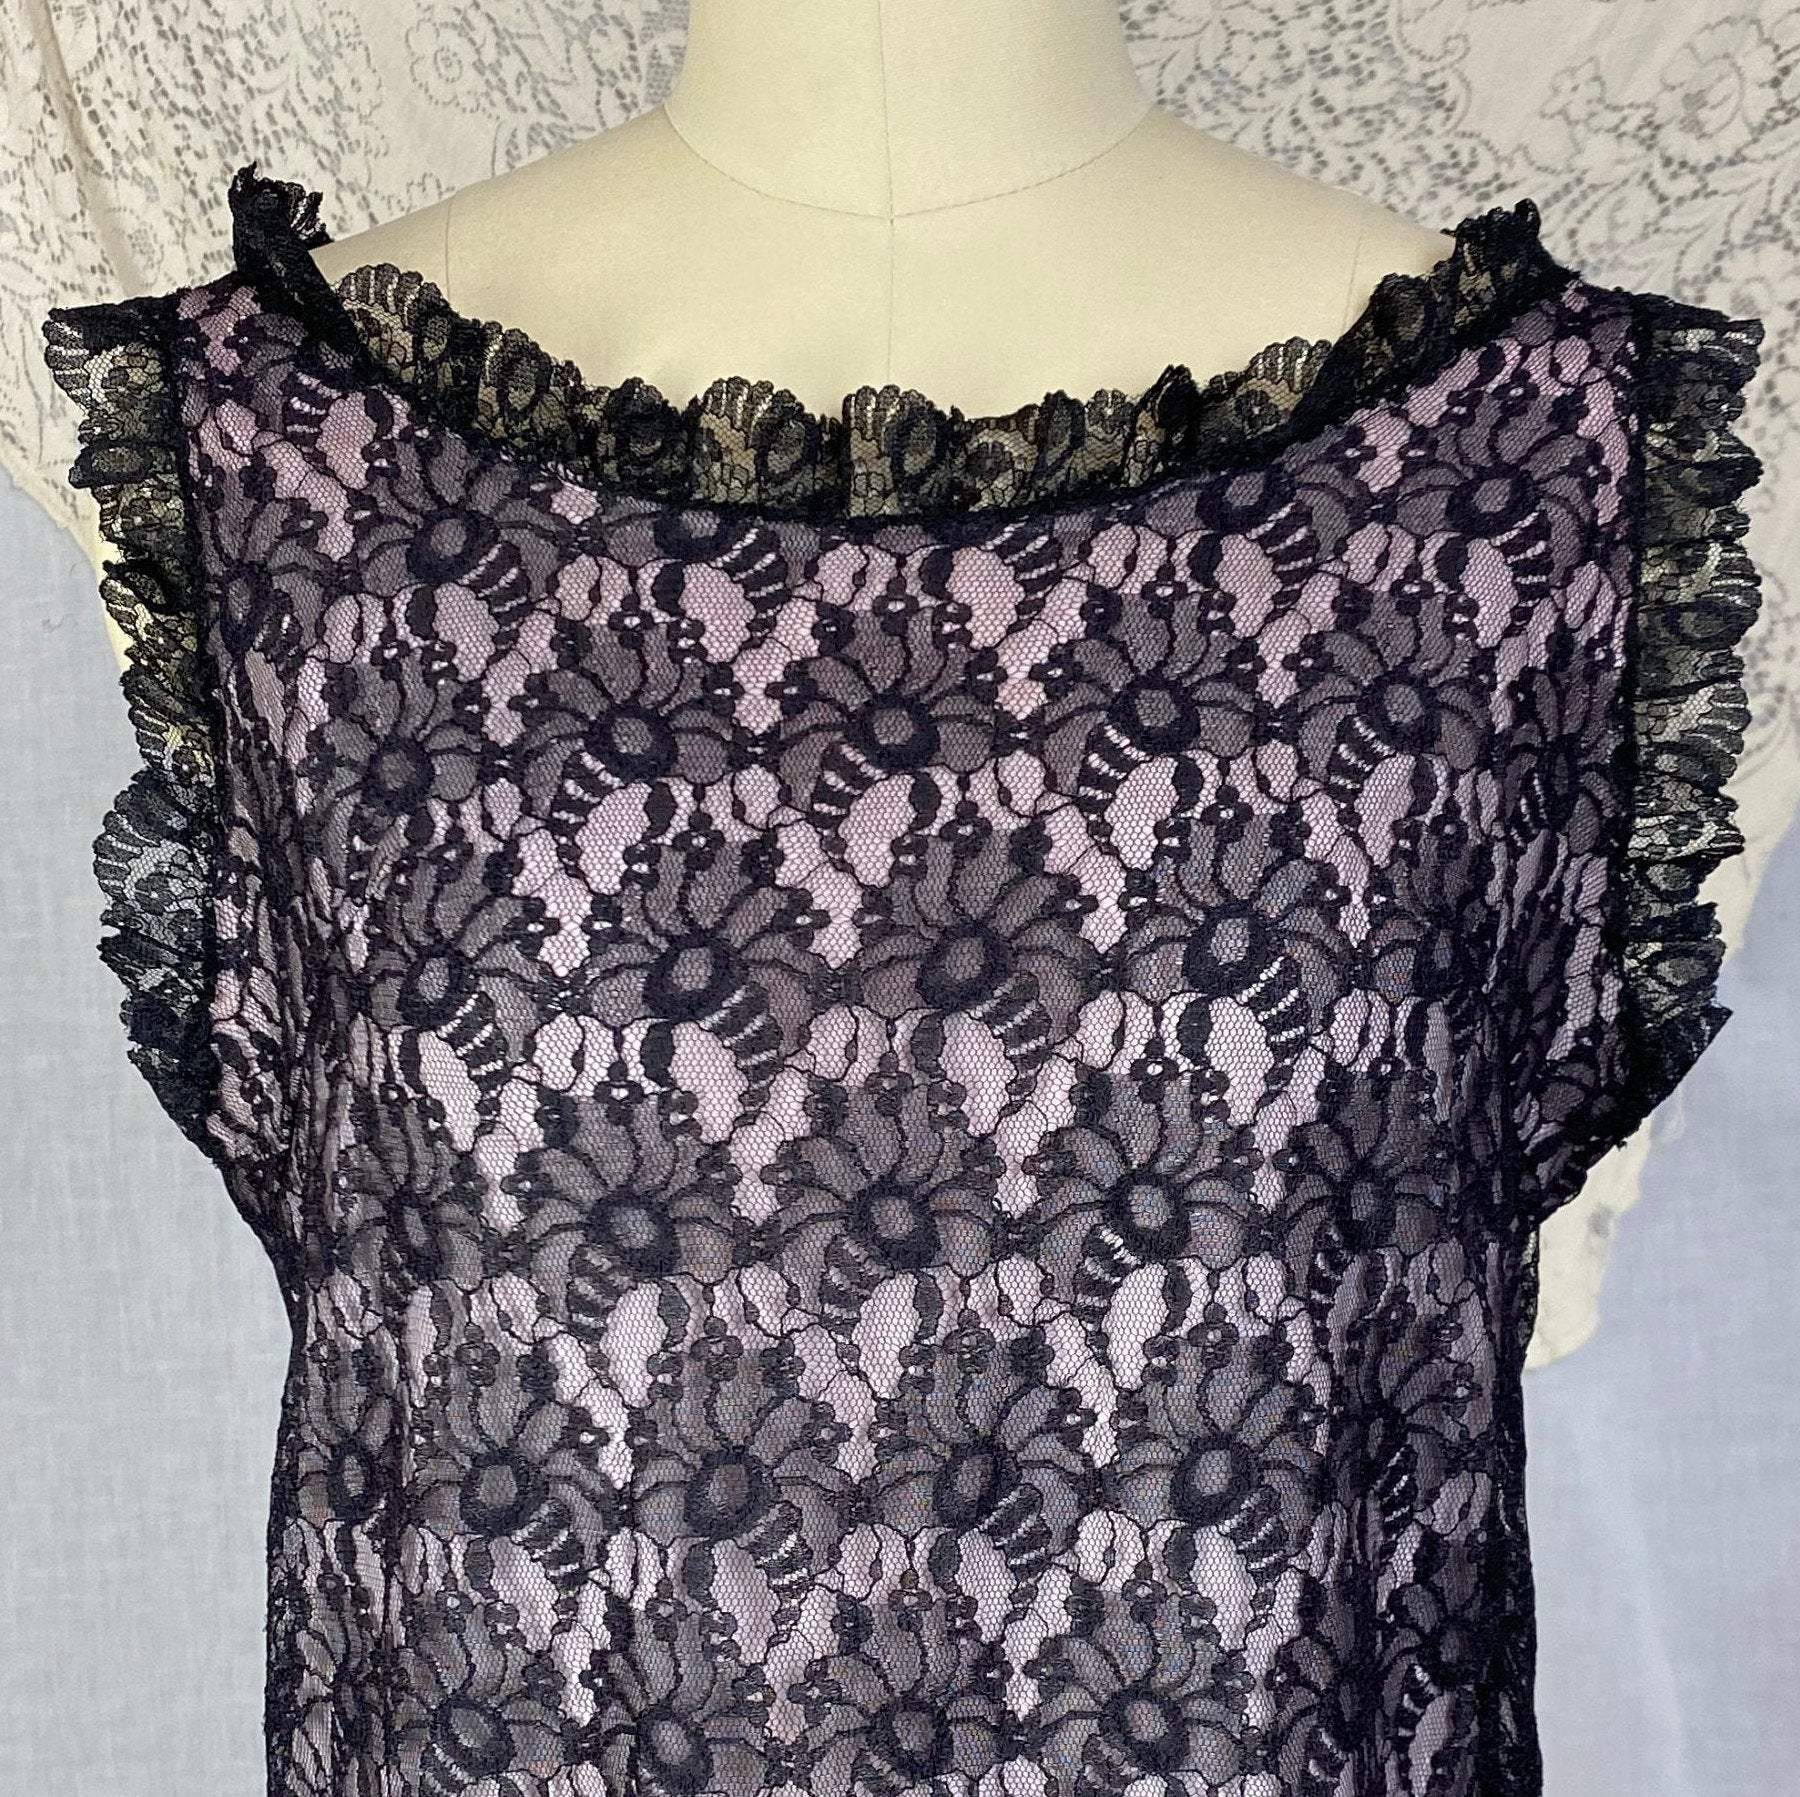 Vintage 1960's Babydoll Nightgown | Sheer Black Floral Lace Illusion over Pink Nylon with Ruffles | Size M, LG - Daggers & Dames